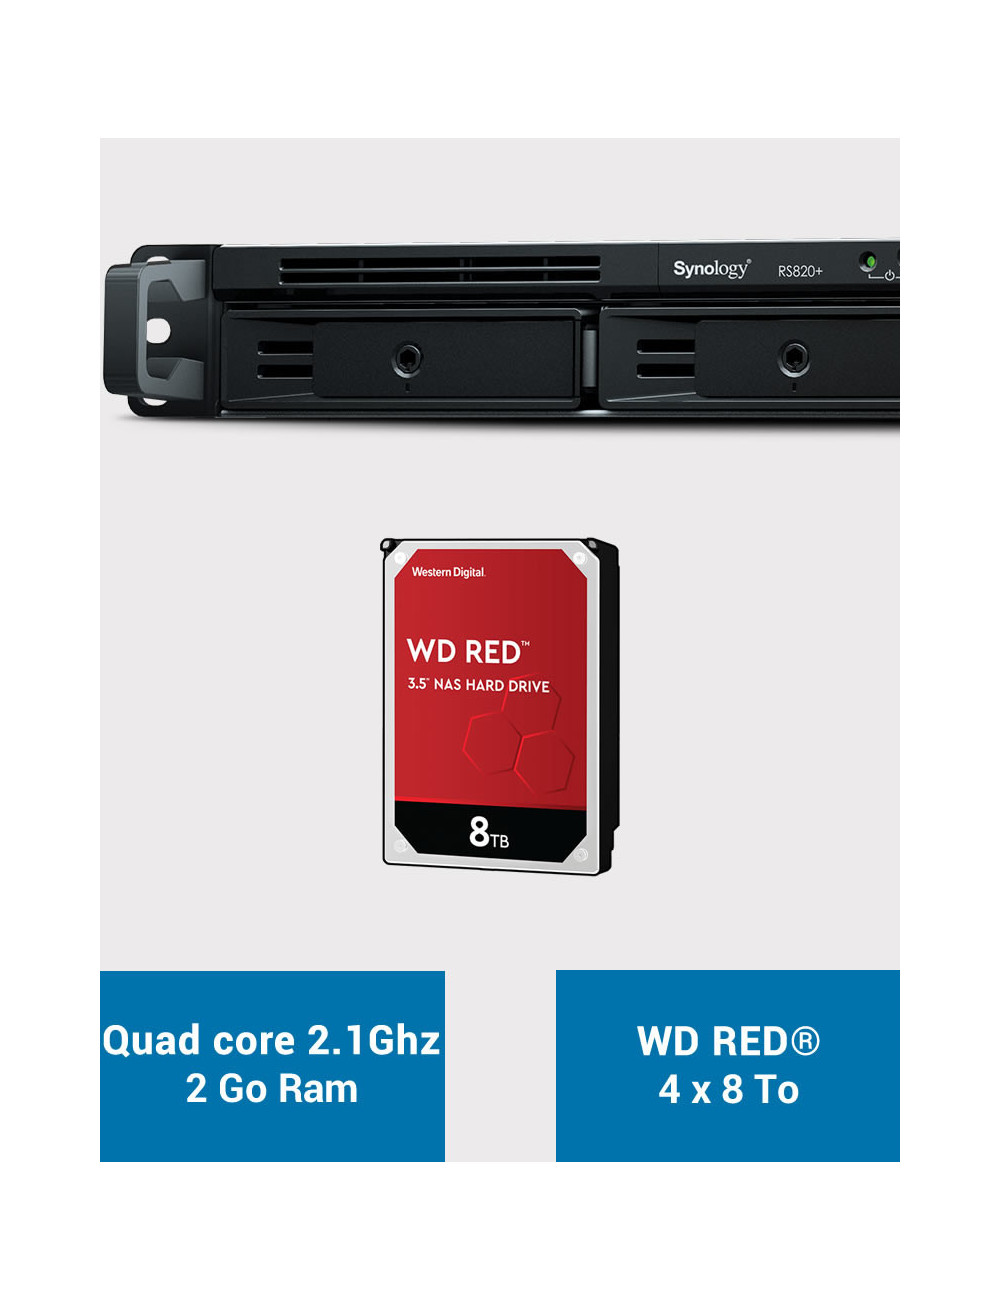 Synology RS820+ Serveur NAS WD RED 32To (4x8To)